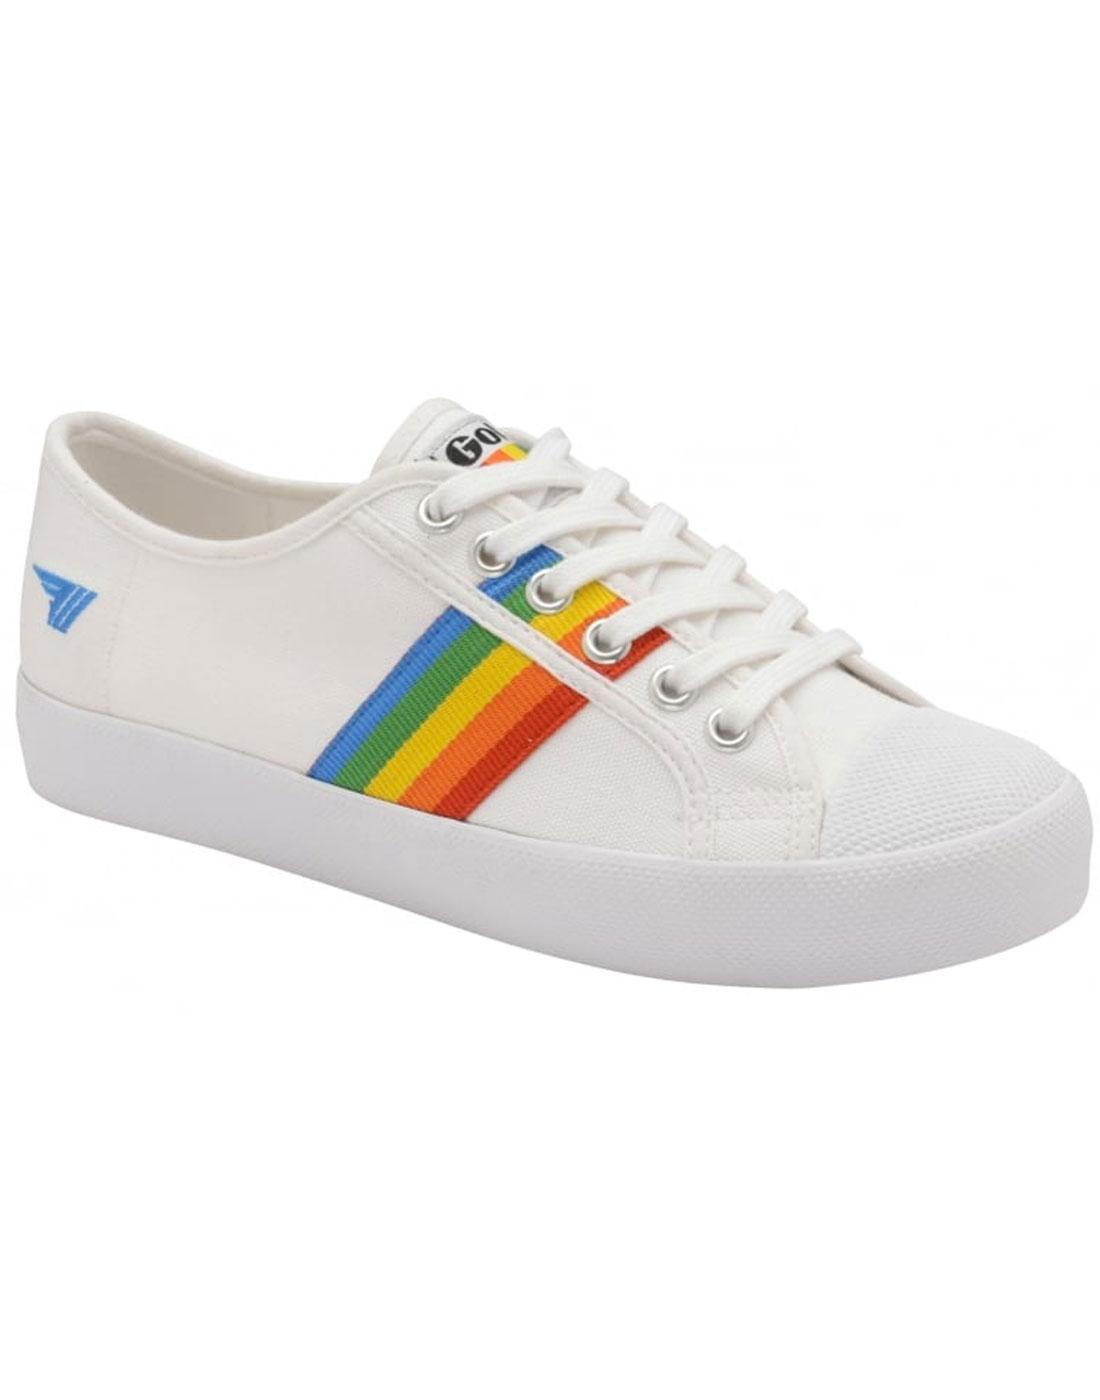 Coaster Rainbow GOLA Retro 1990s Canvas Trainers W